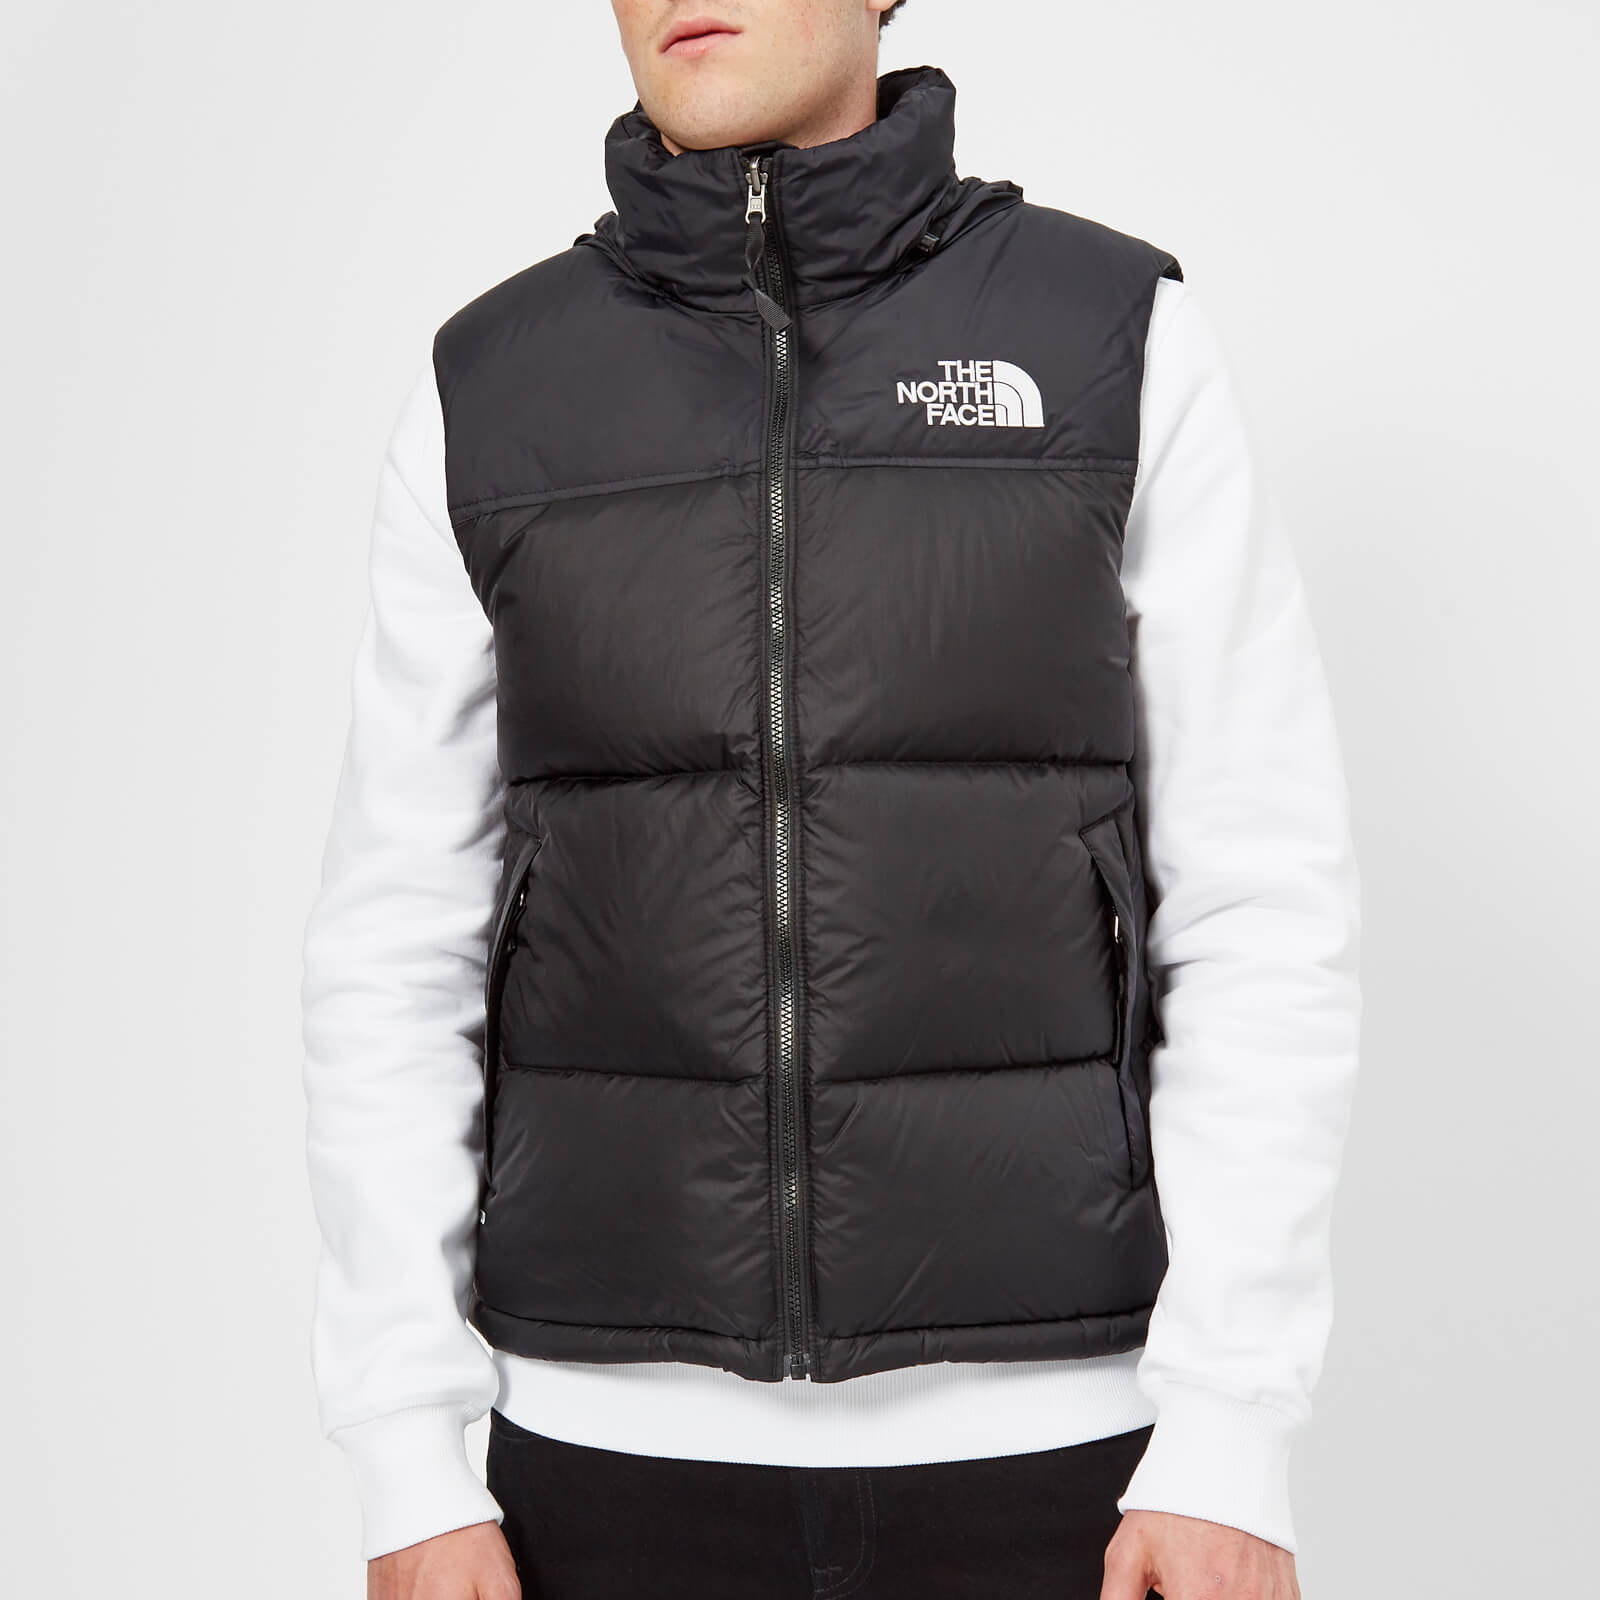 a740f2787 The North Face Men's 1996 Retro Nuptse Vest - TNF Black